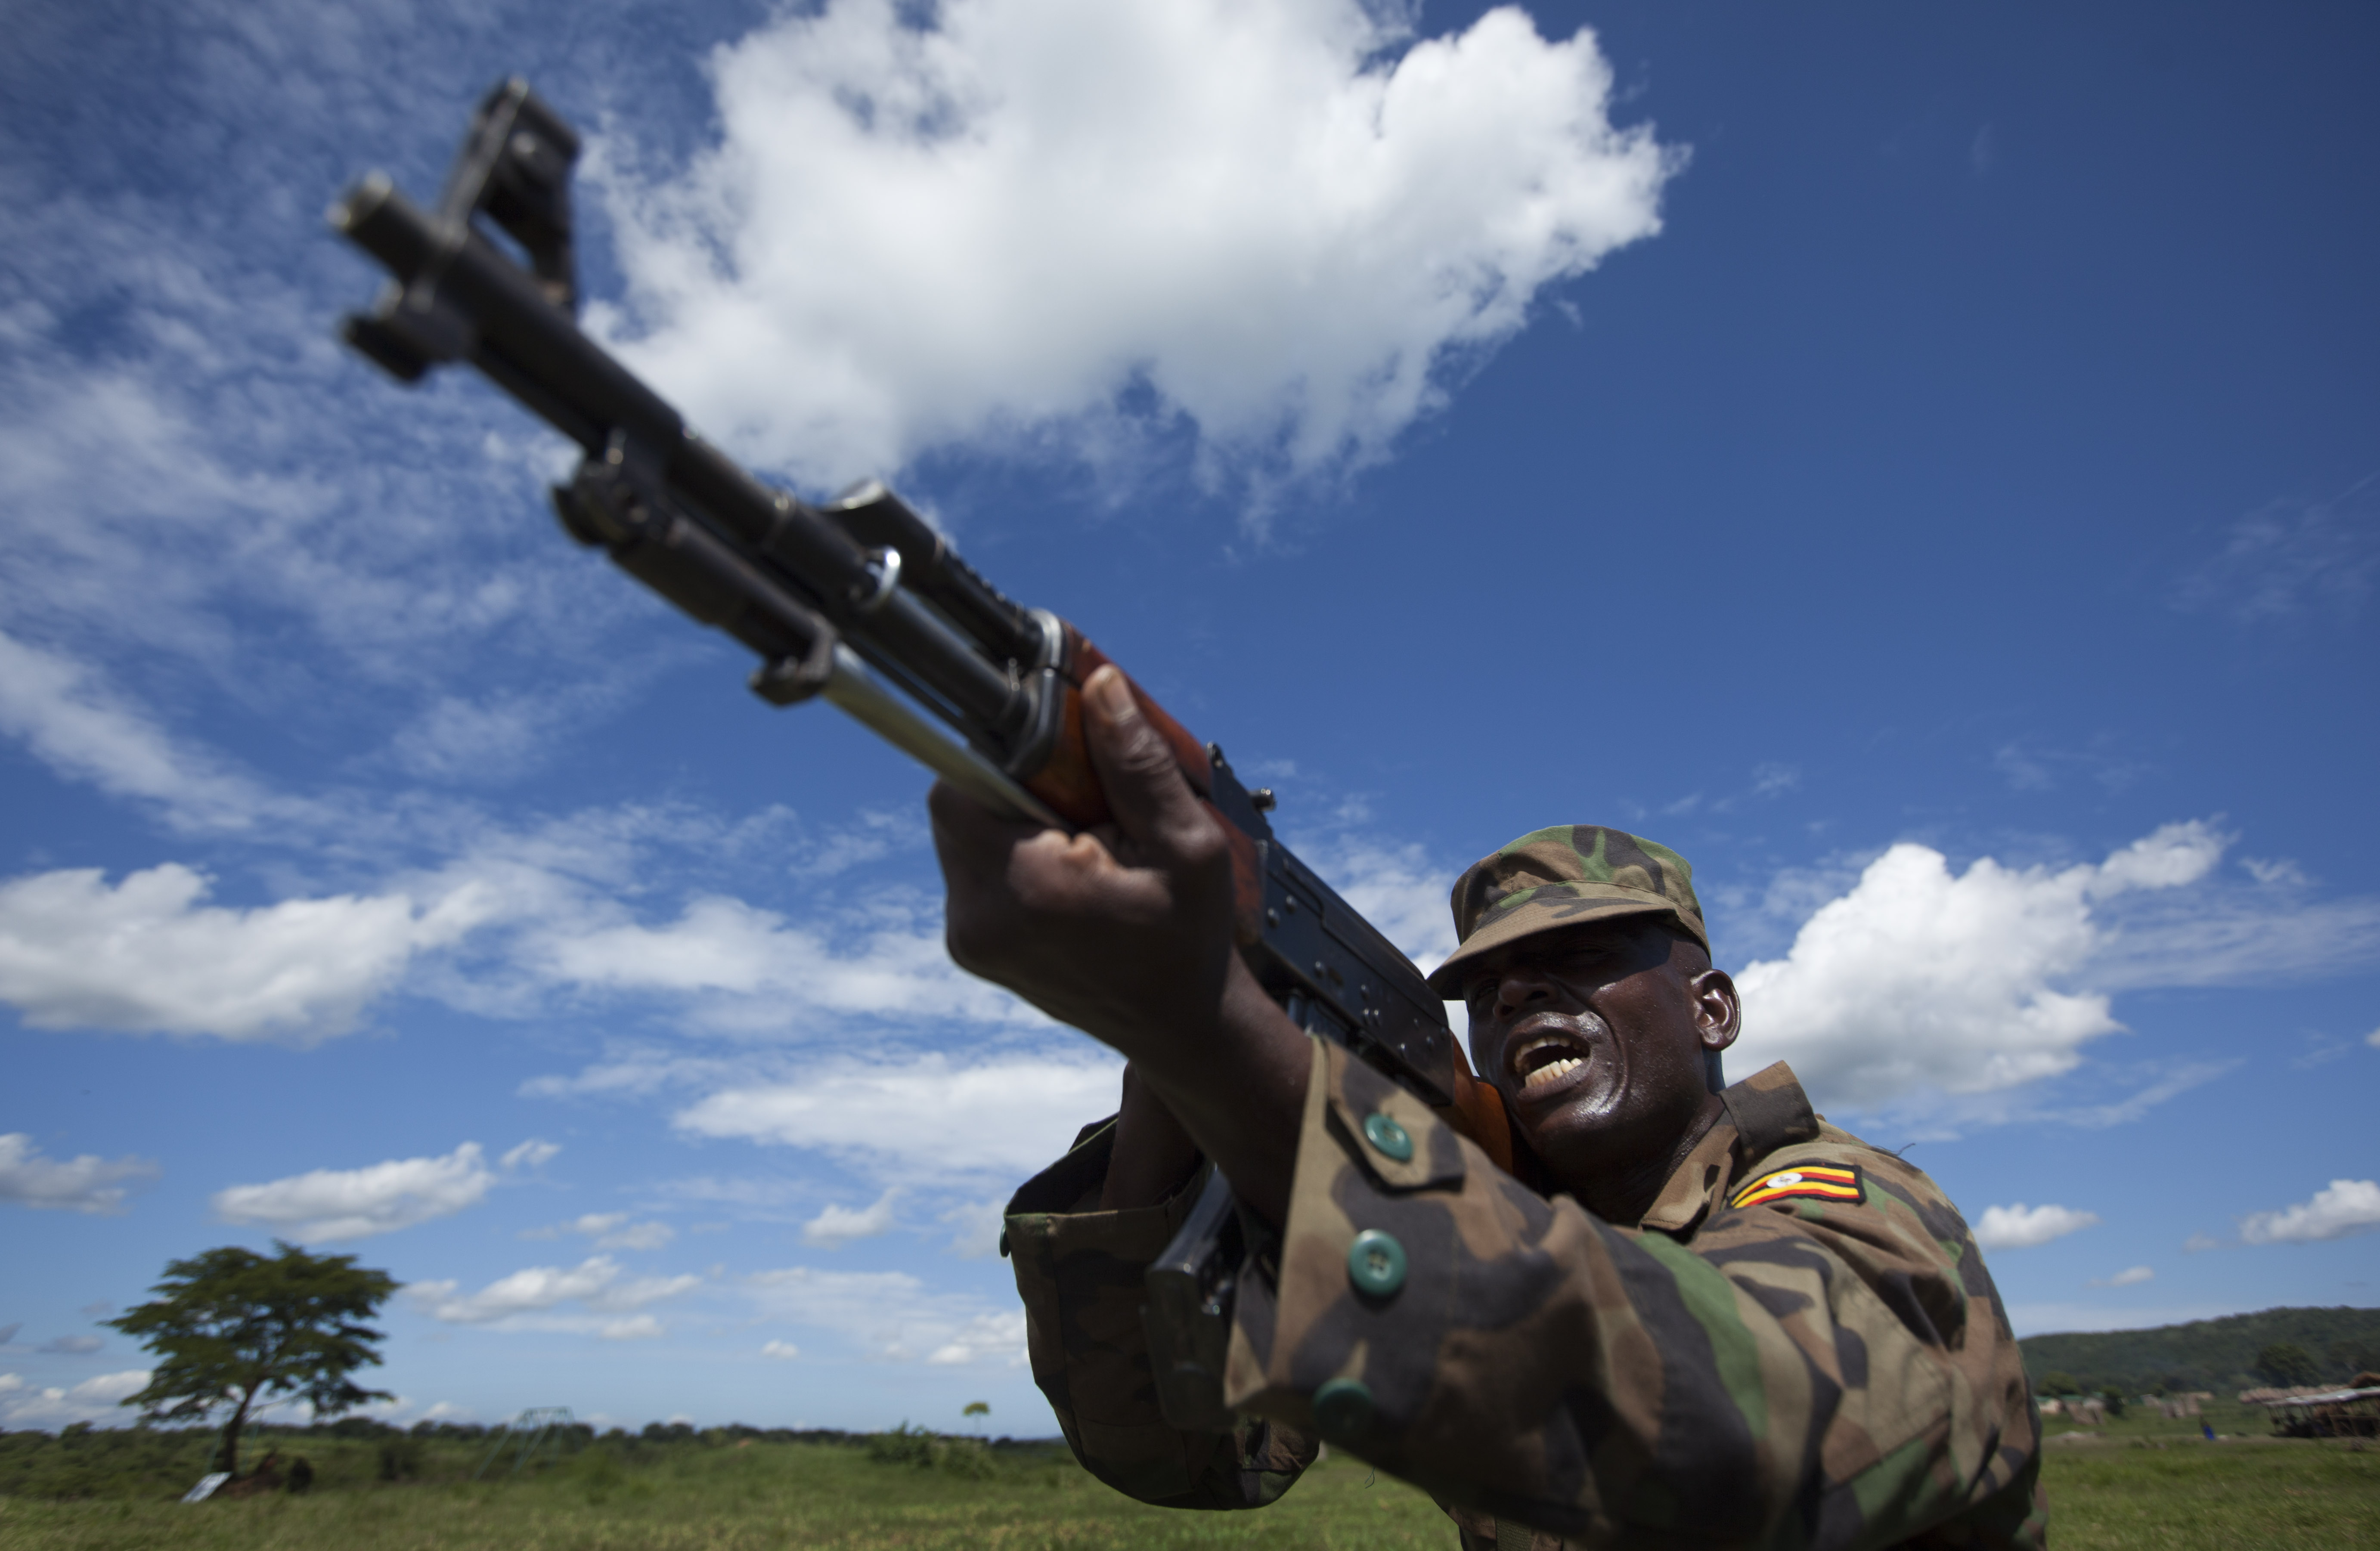 A soldier from the Uganda People's Defence Force (UPDF) engages in weapons training at the Singo training facility in Kakola, Uganda Monday, April 30, 2012. The camp provides different training courses run by the U.S. Marines and also by instructors contracted by the U.S. State Department.